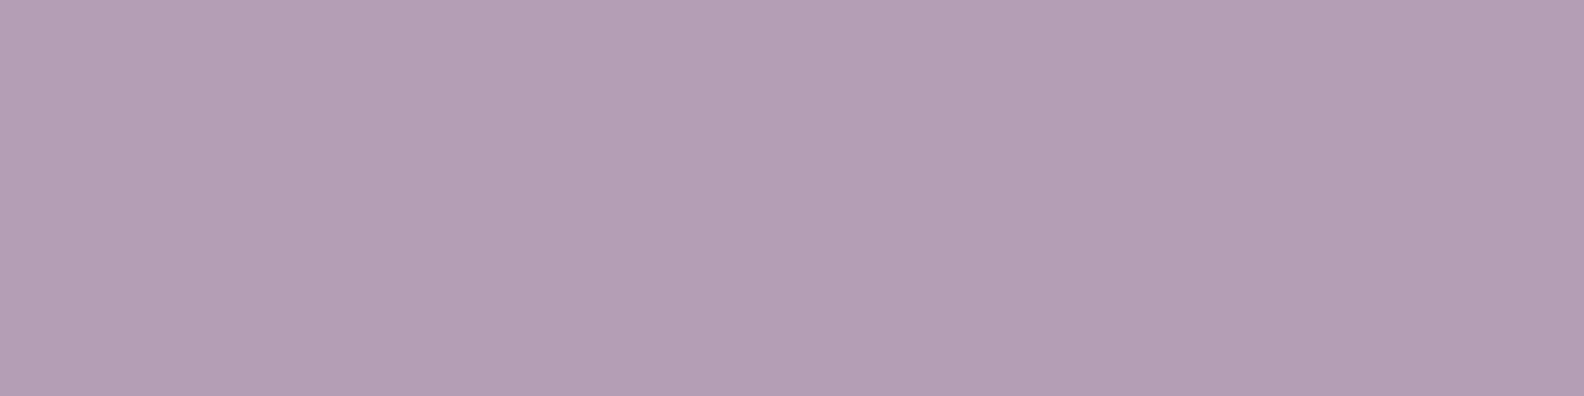 1584x396 Pastel Purple Solid Color Background